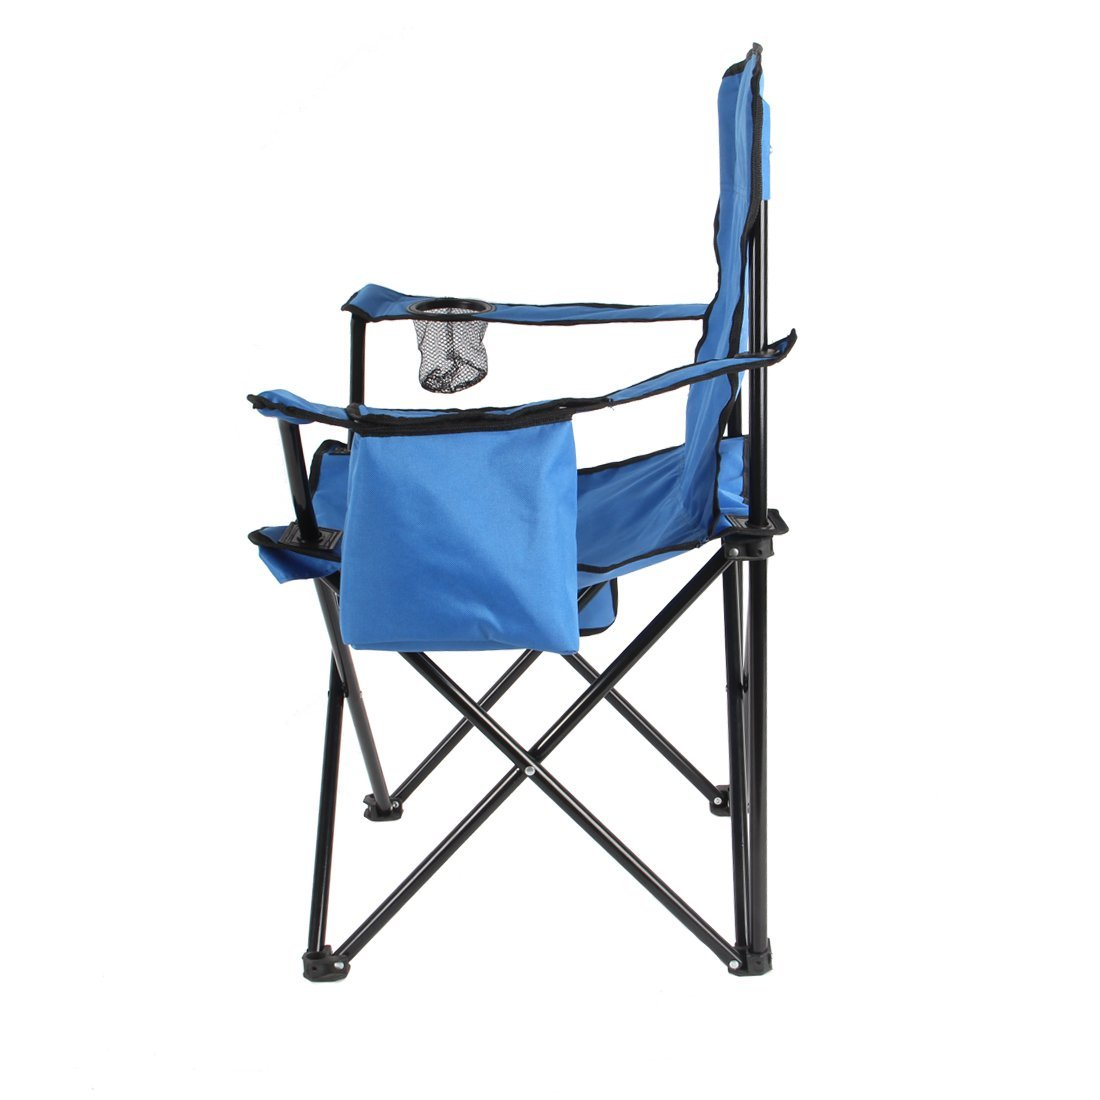 fishing chair with arms captains gym machine camping folding beach arm adjustable canopy ice bag litter caddie